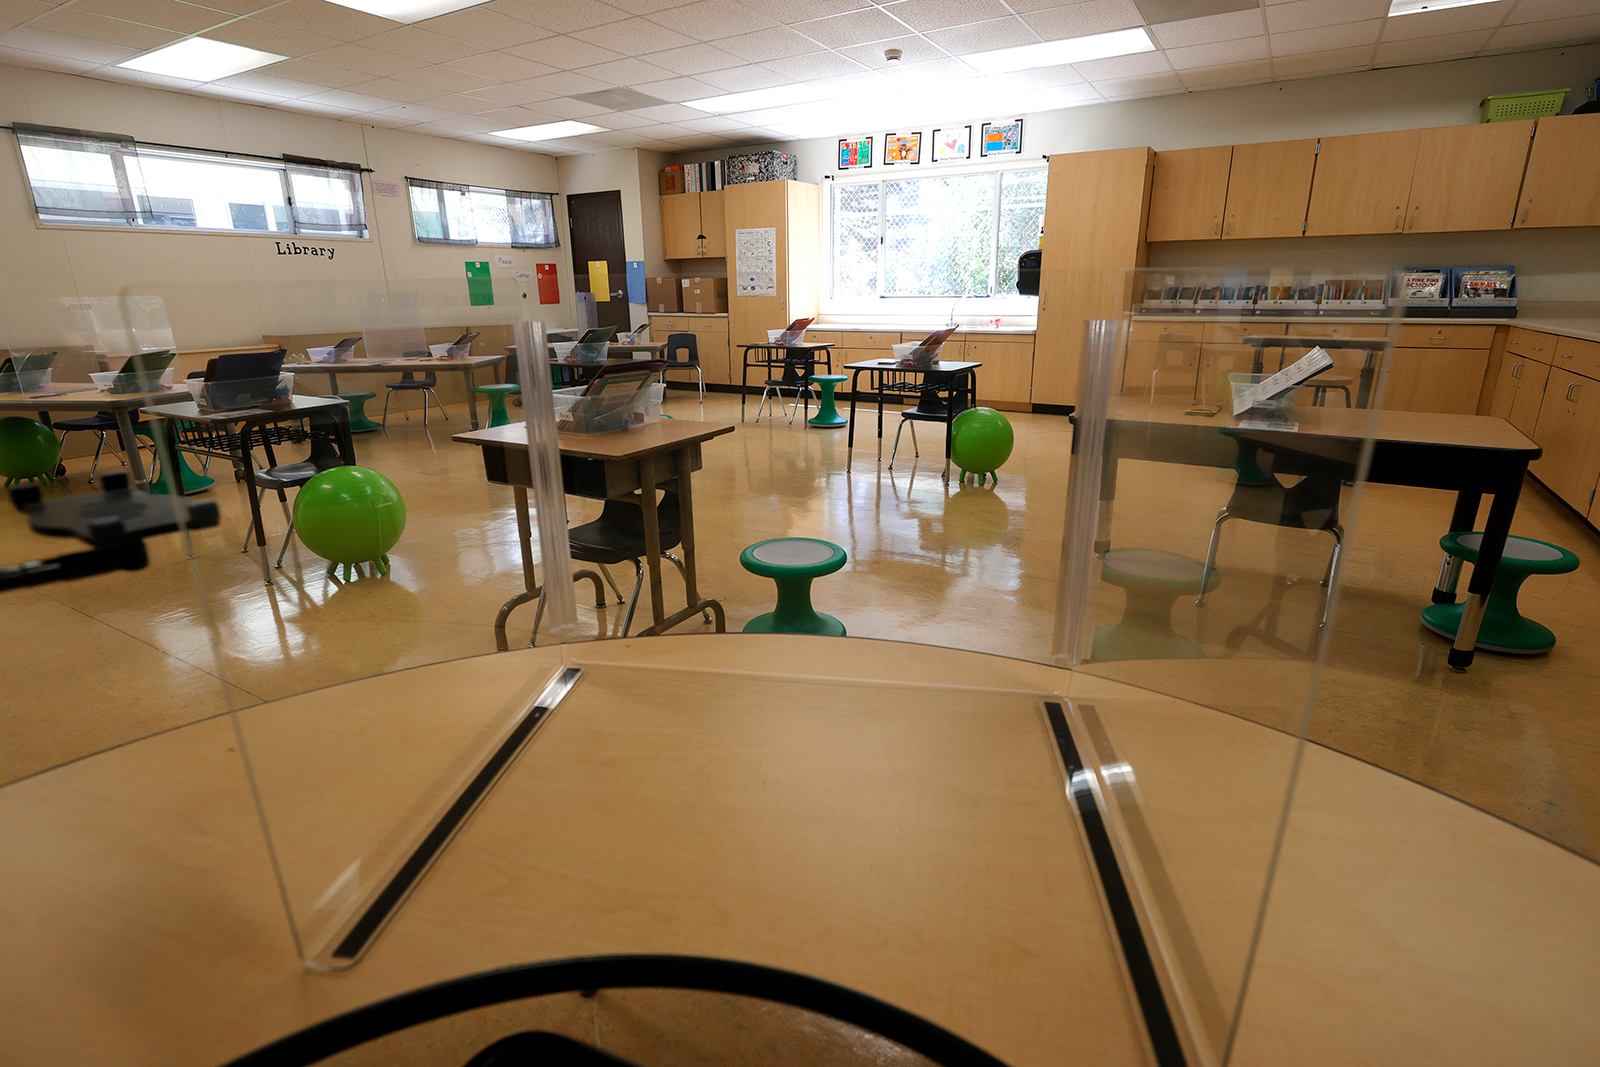 Plexiglass dividers are set up on tables in a first grade classroom at Bryant Elementary School on April 9, 2021 in San Francisco, California.